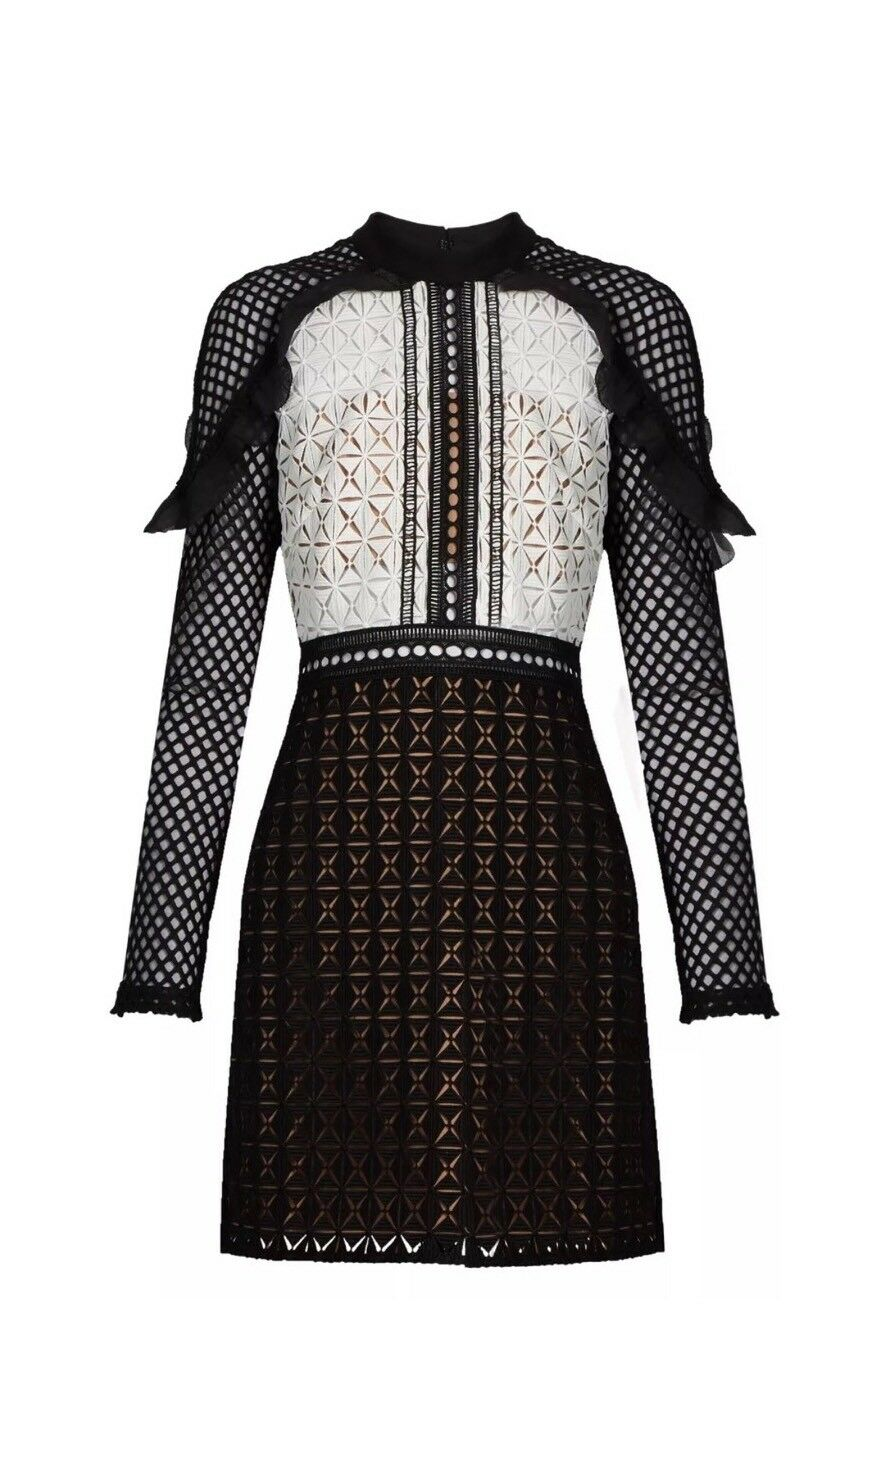 SELF-PORTRAIT Geometric Monochrome Lace Mini Dress Size 4